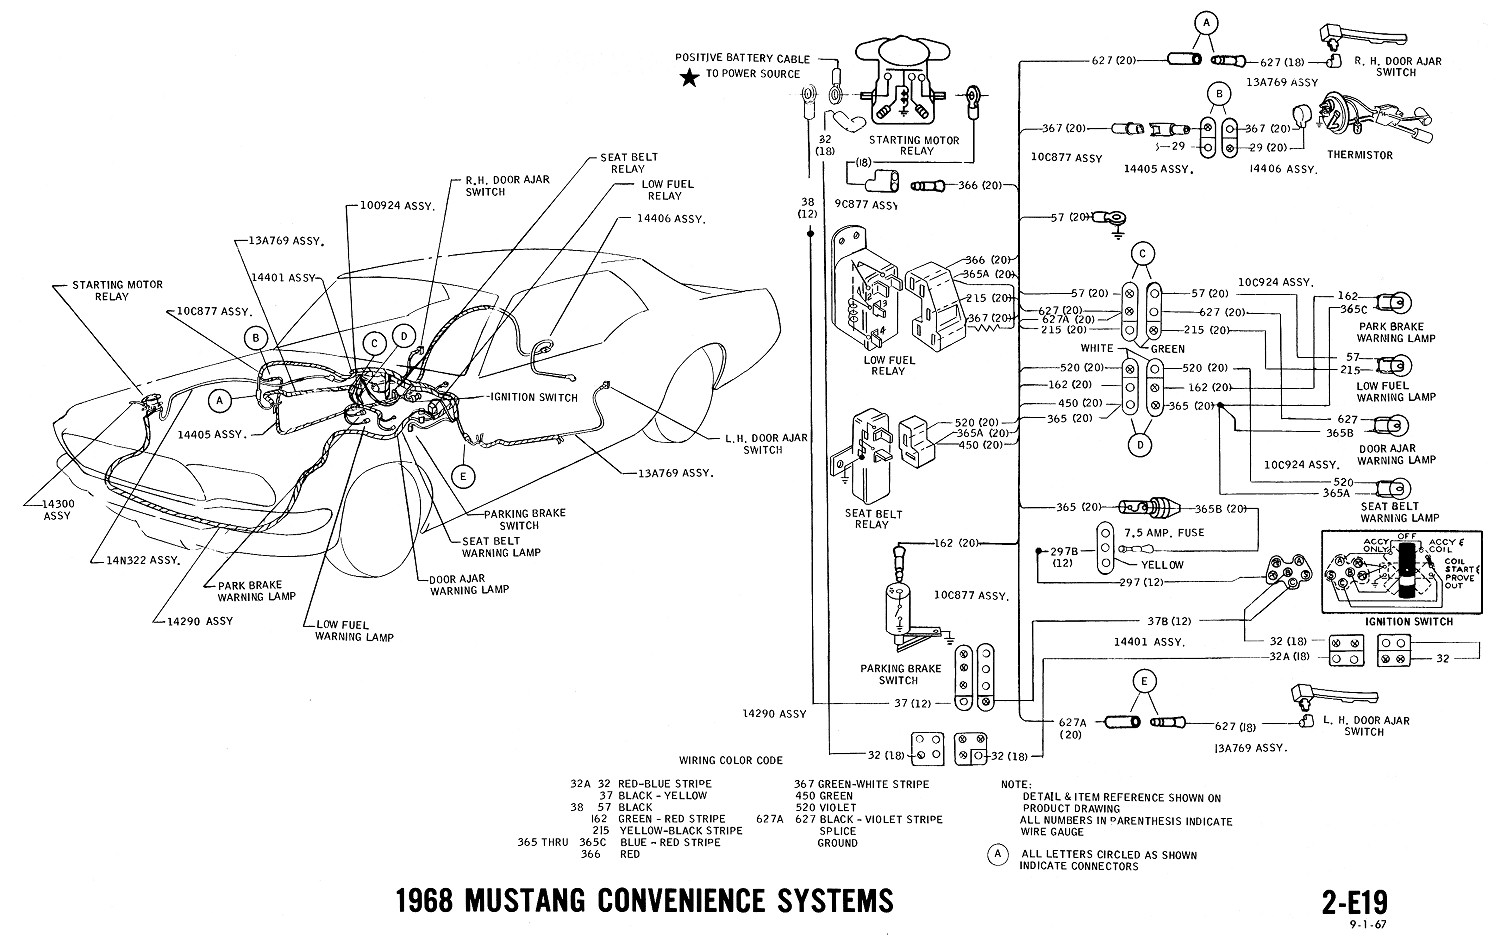 E19 1968 mustang wiring diagrams evolving software Multi Speed Blower Motor Wiring at n-0.co